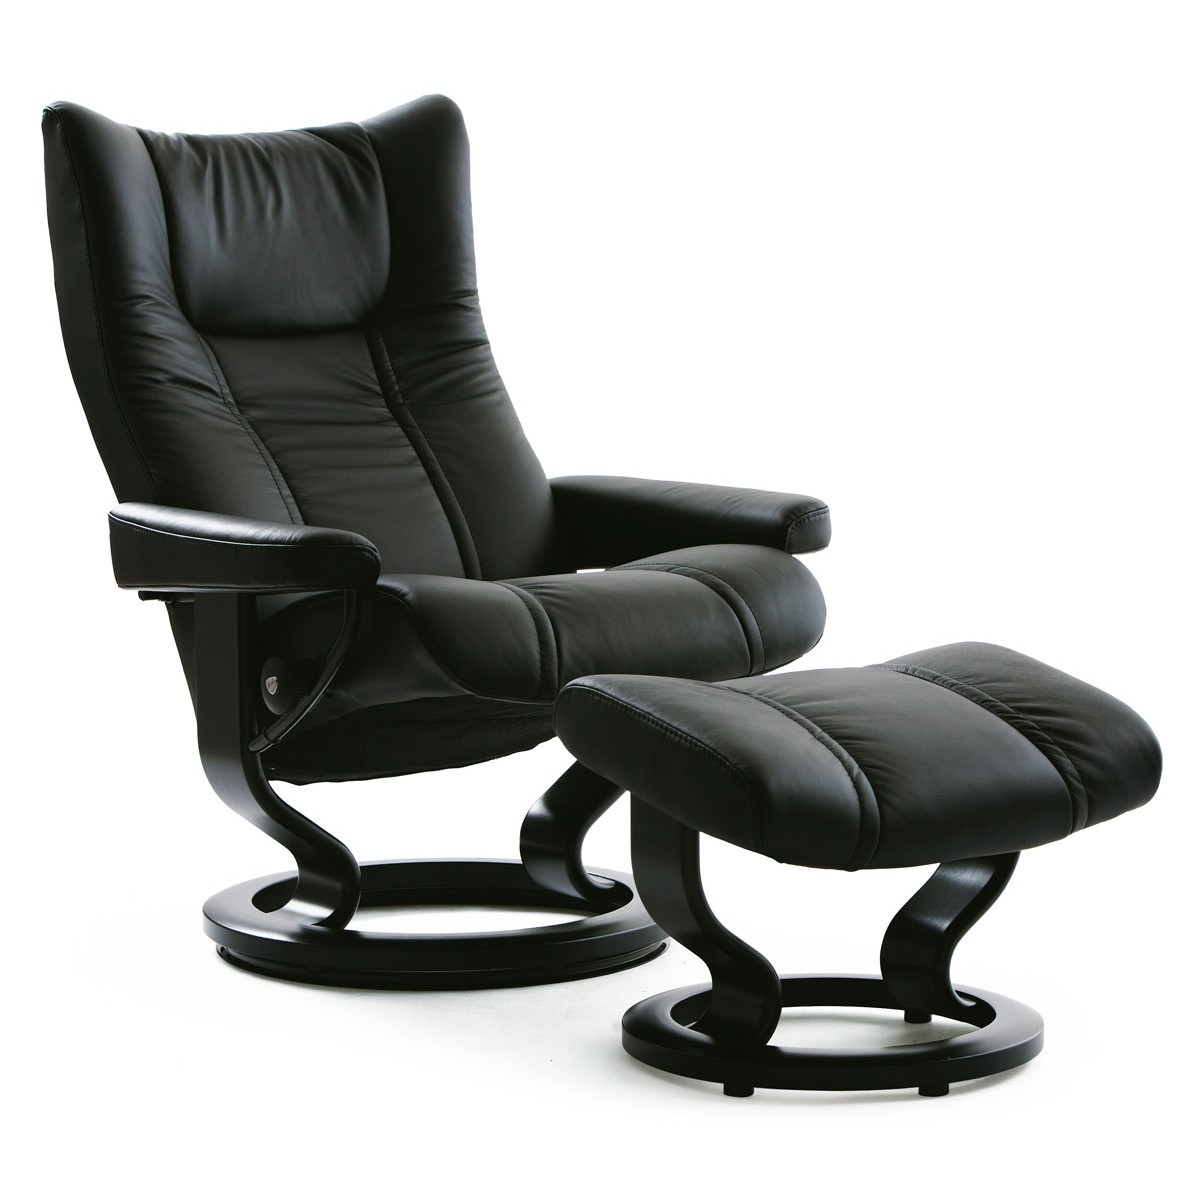 Ekornes Consul Large Stressless Wing Large Recliner And Ottoman From 2 495 05 By